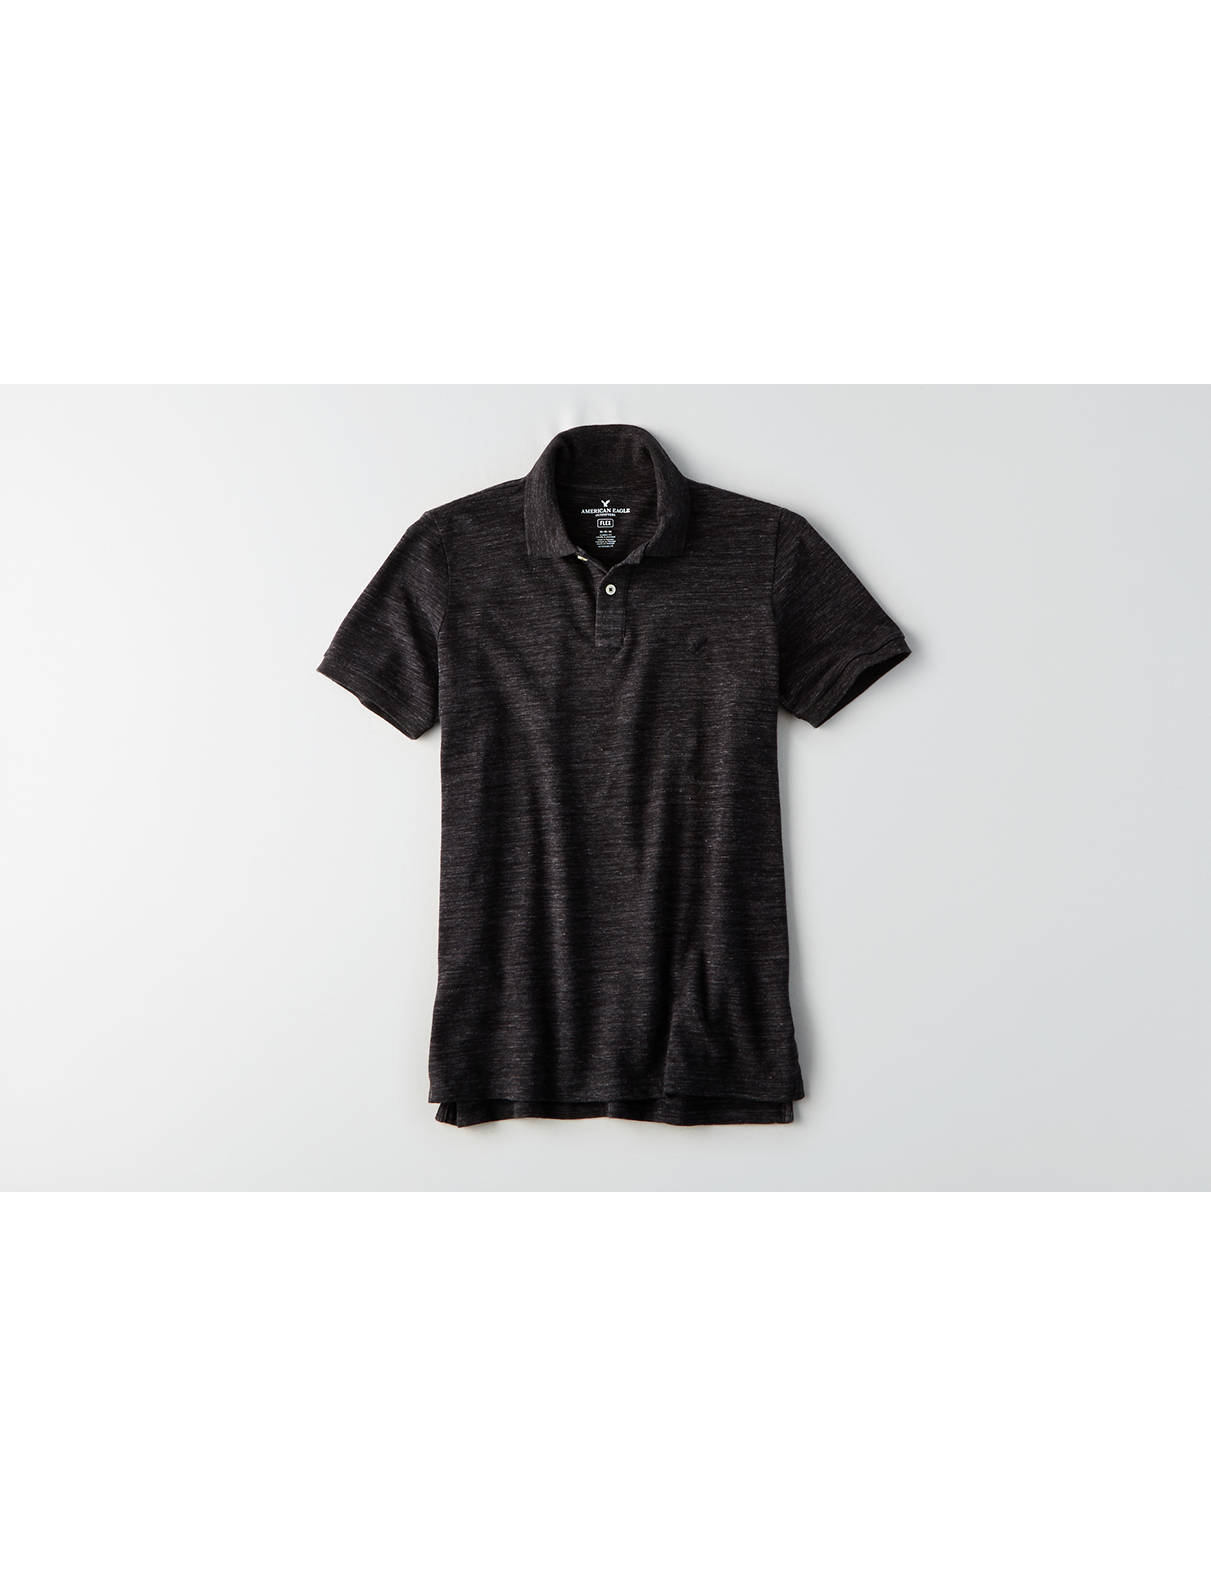 Men's Polo Shirts in Solids, Stripes, & More | American Eagle ...